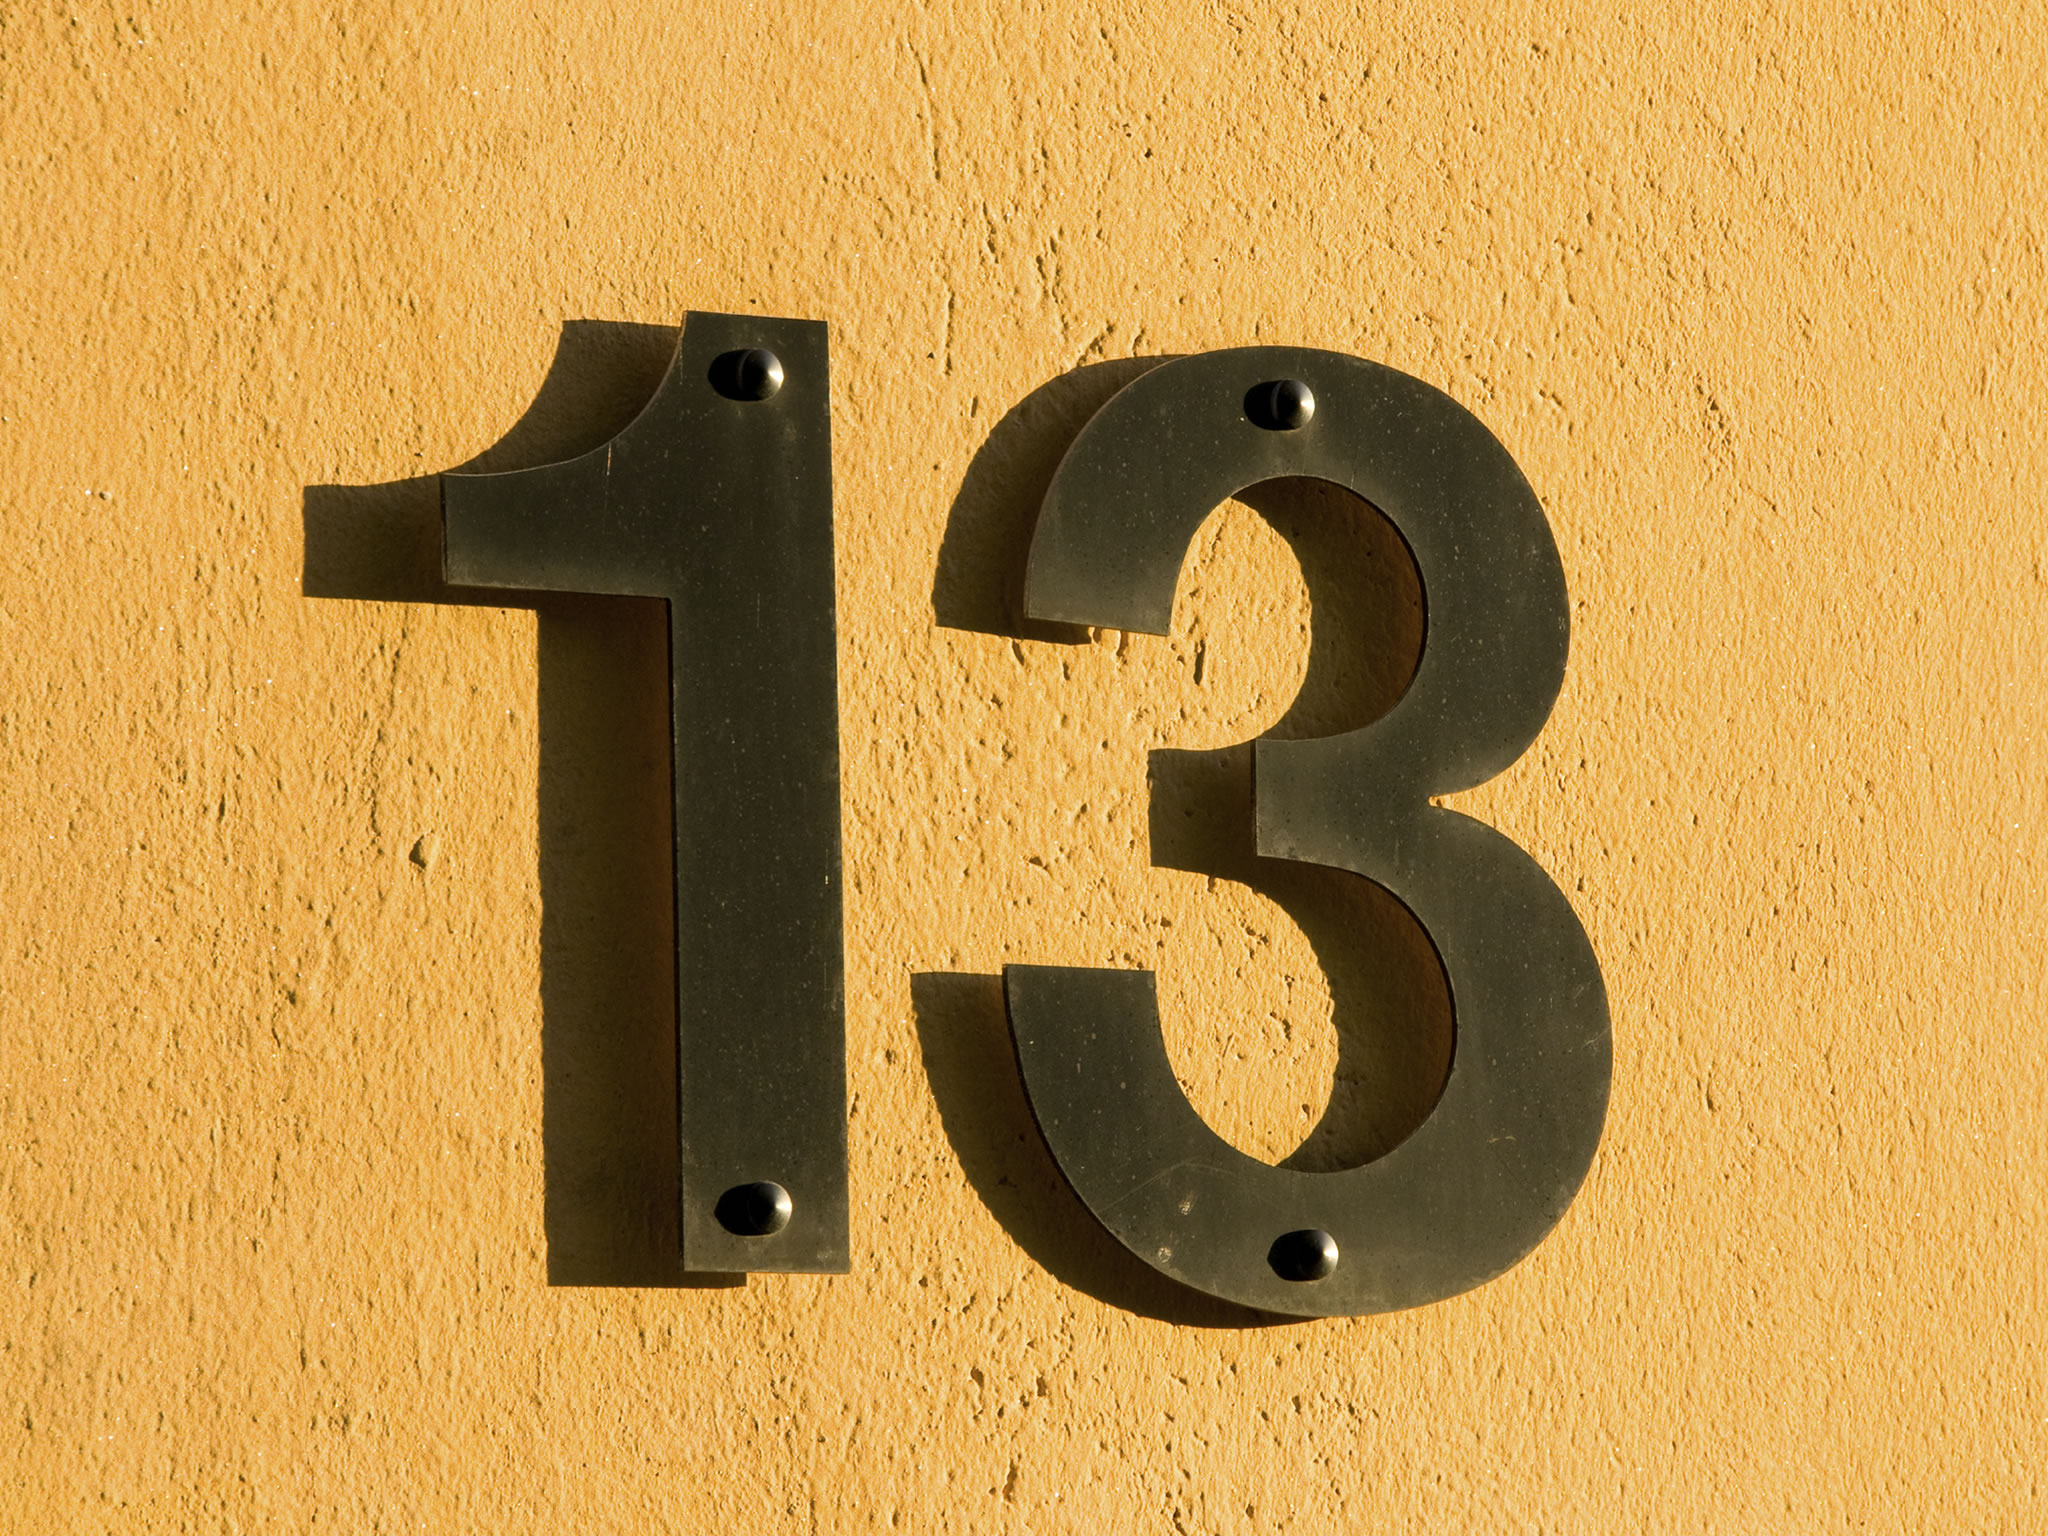 What's so unlucky about the number 13? - HISTORY